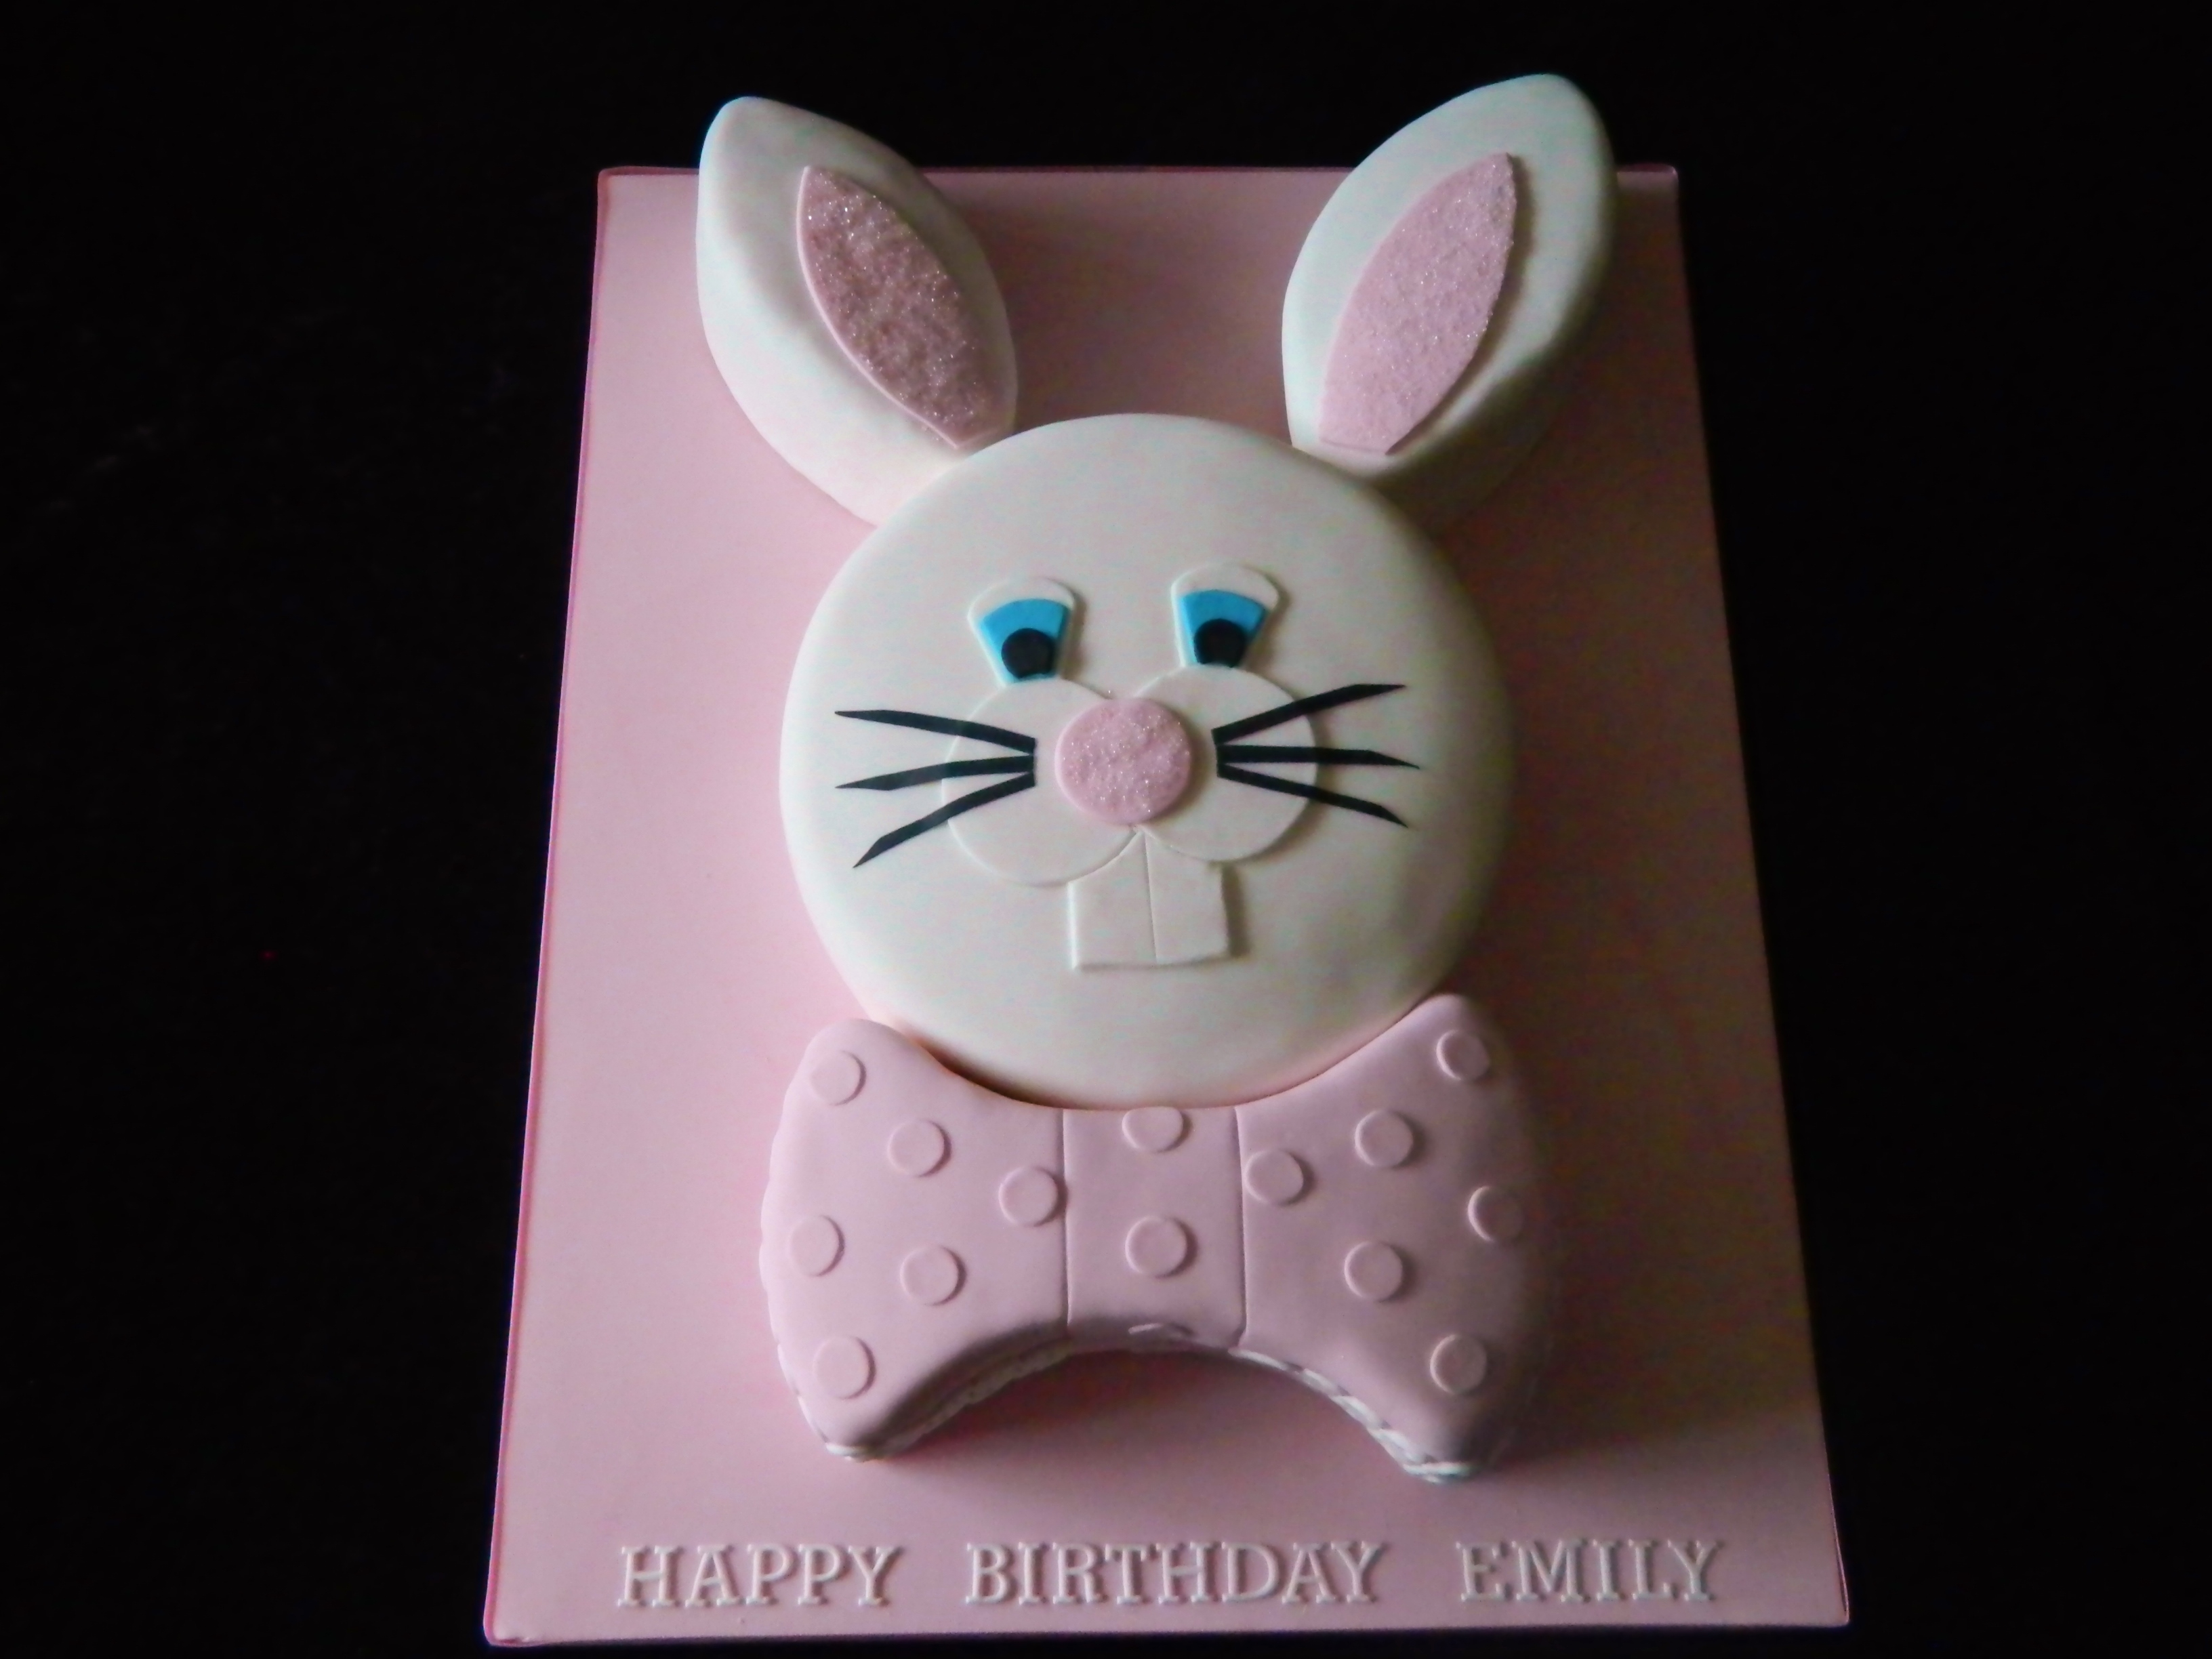 Bunny Birthday Cake 10 Bunny Shaped Birthday Cakes Photo Rabbit Shaped Birthday Cake